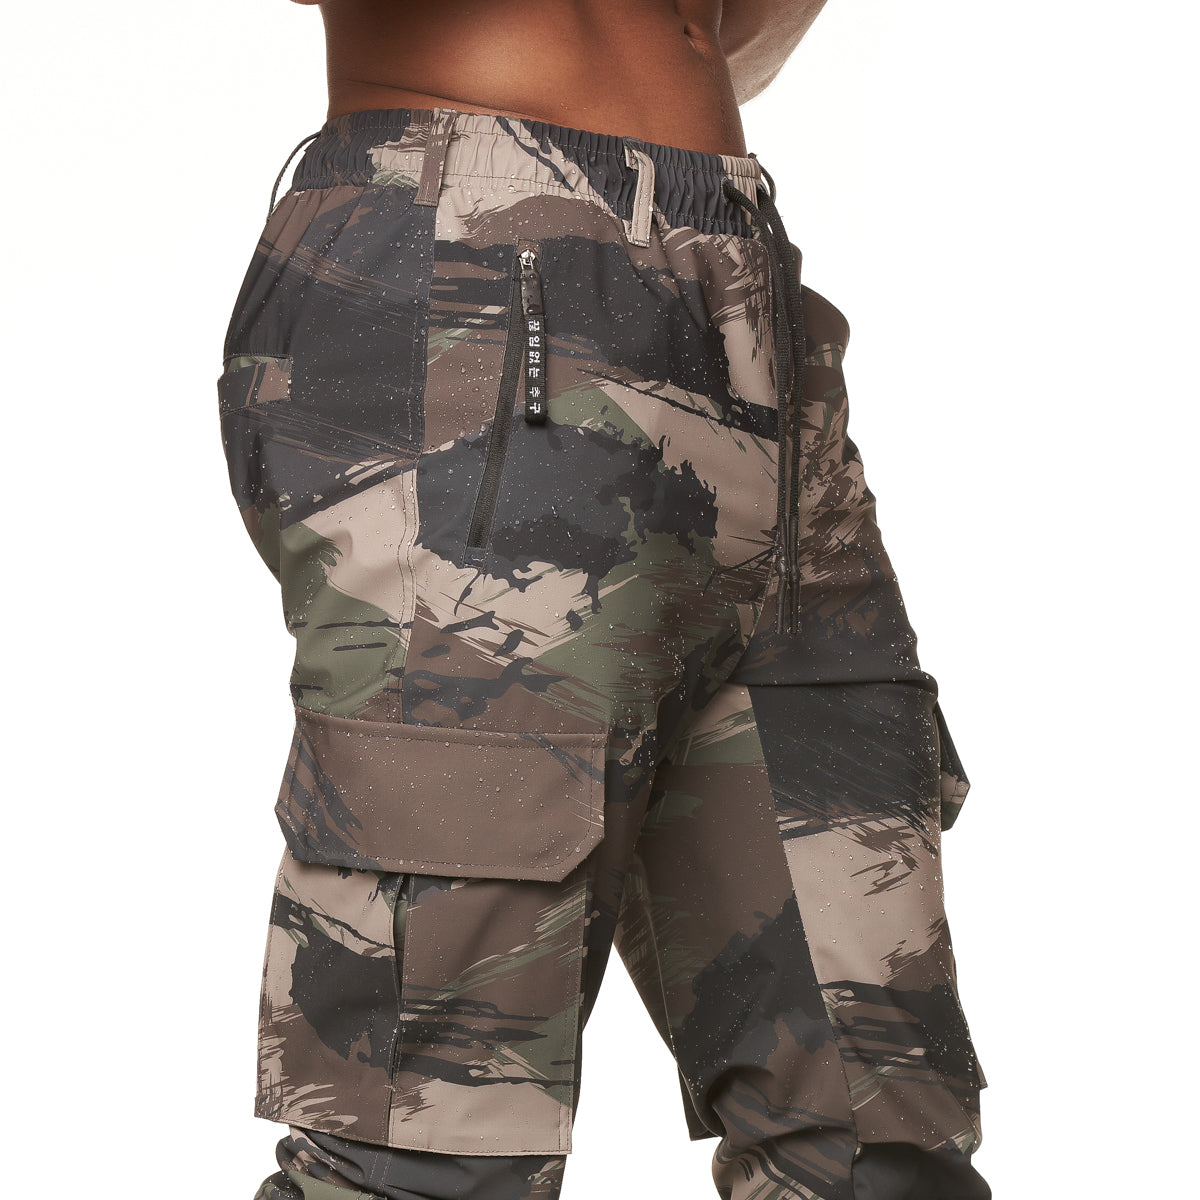 0350. TETRA® Cargo High Rib Jogger - Woodland Brushed Camo